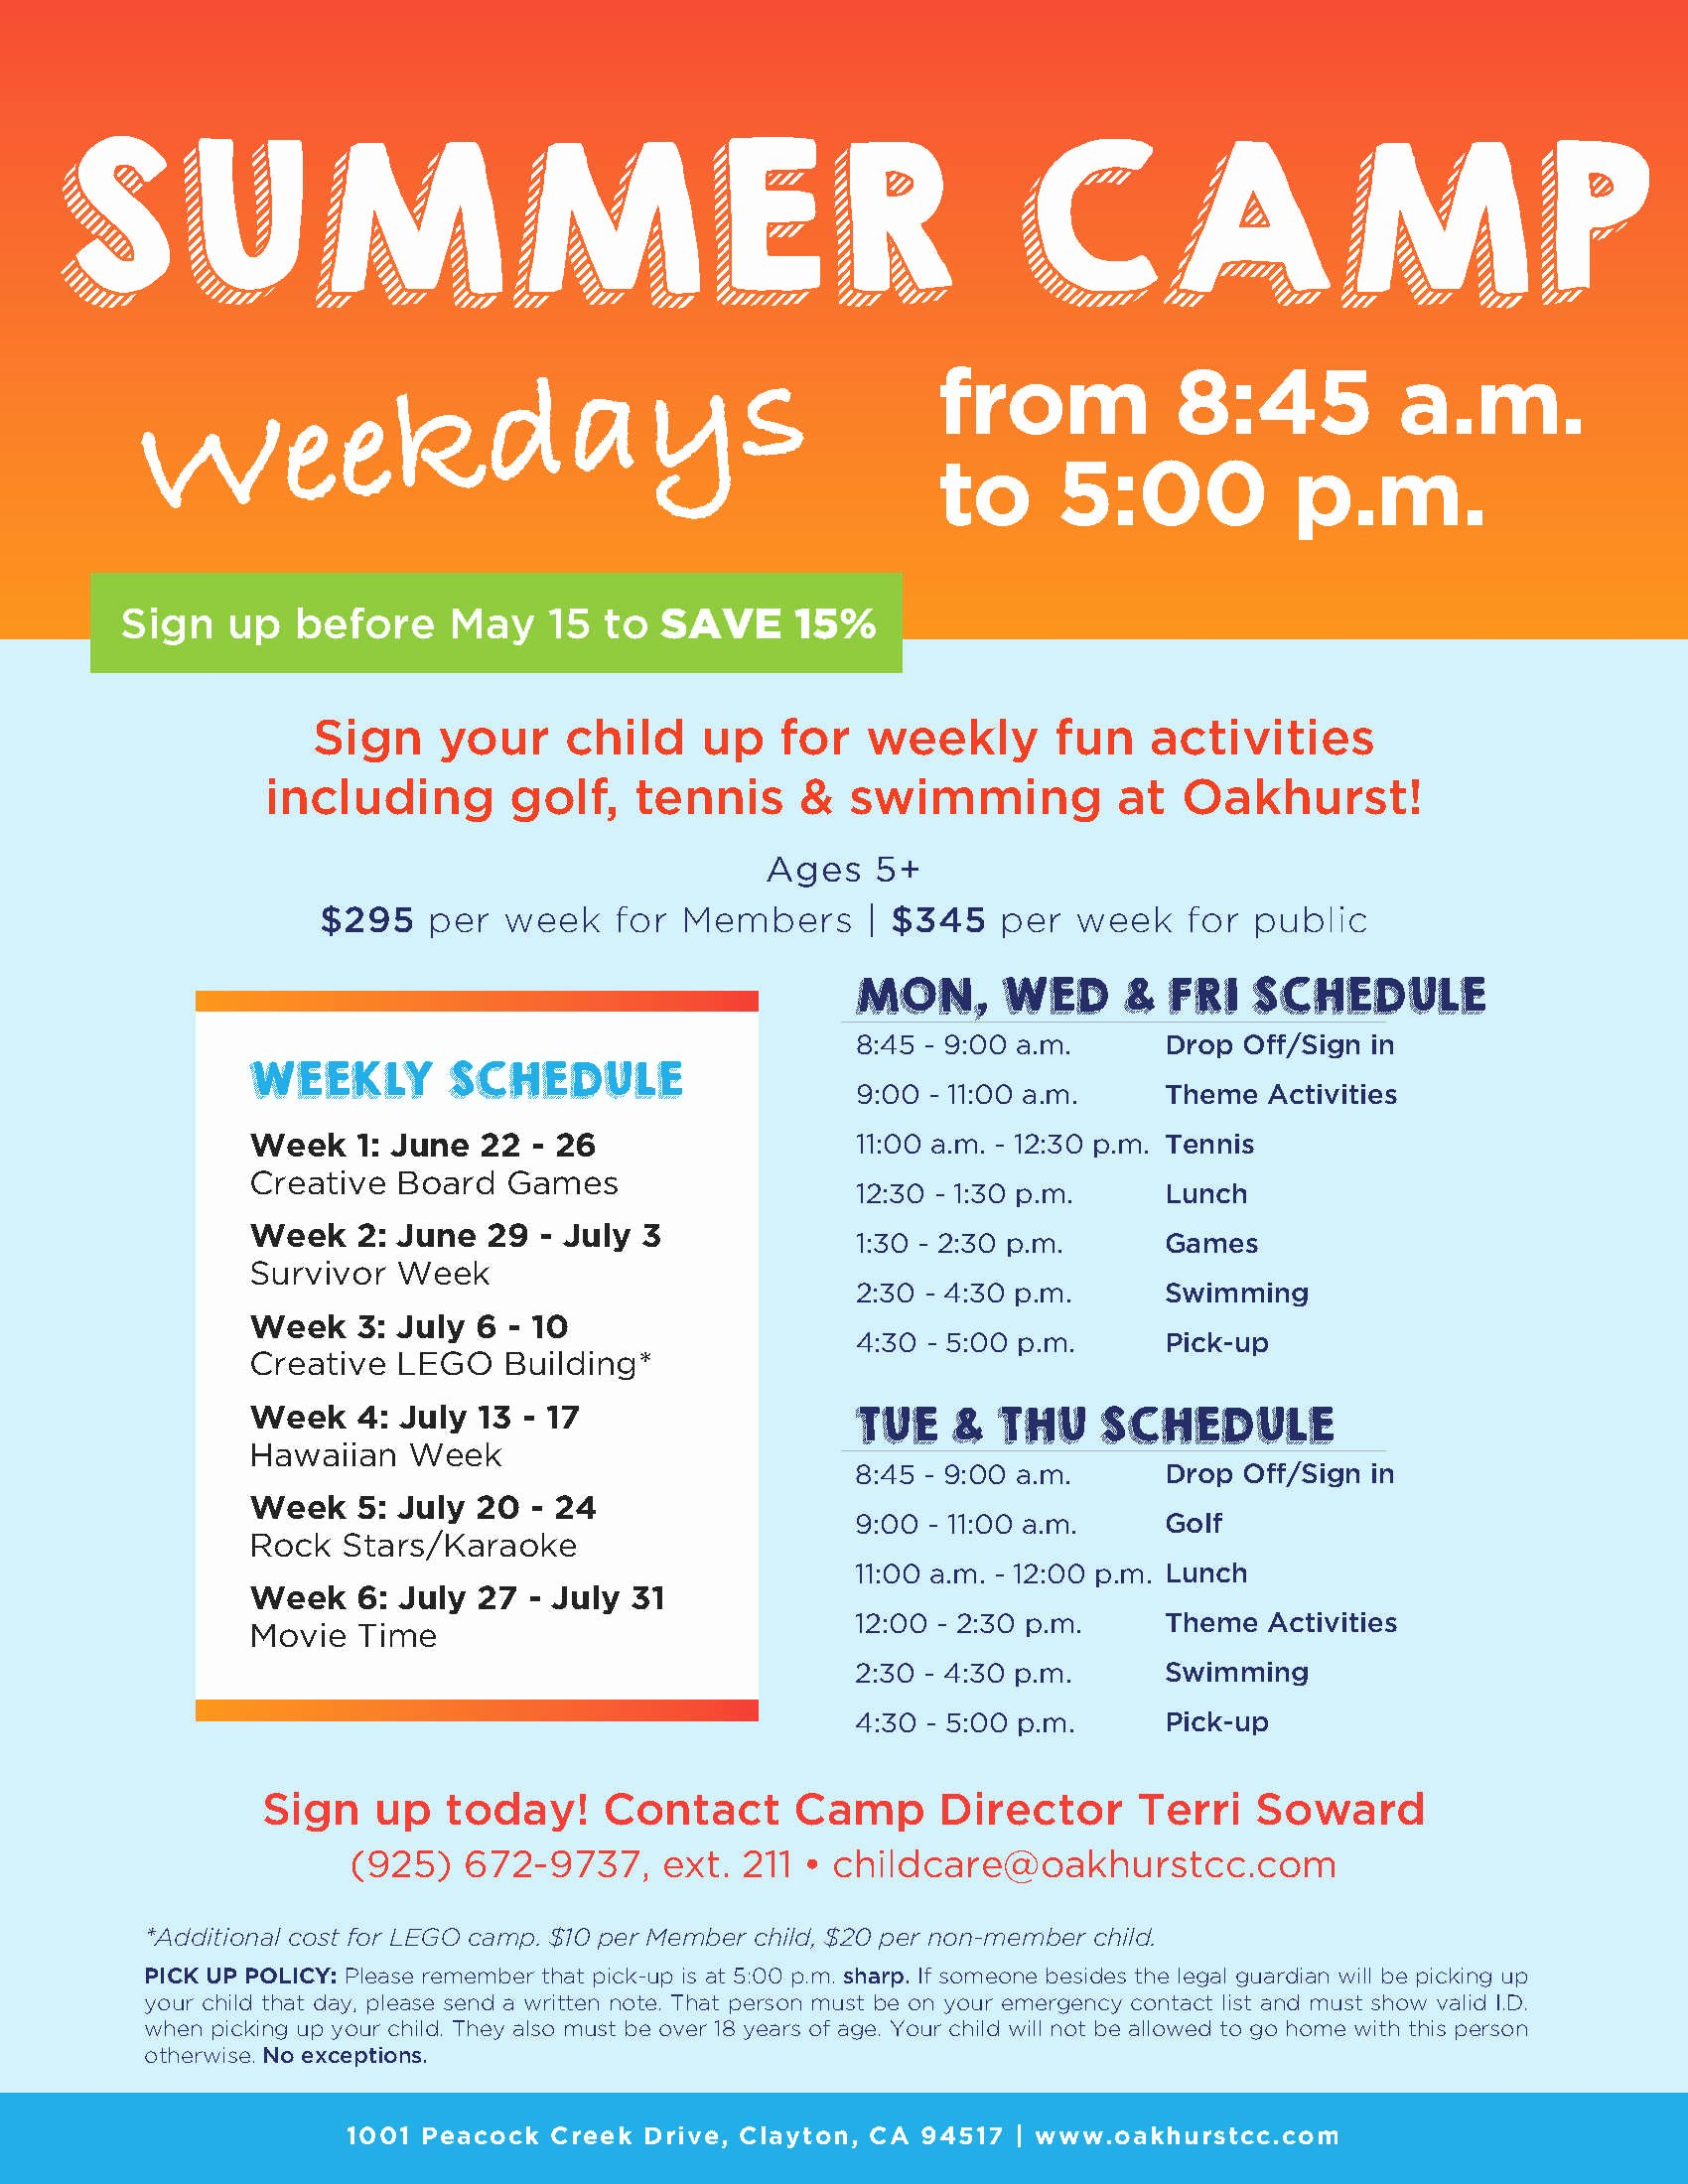 Summer Camp Flyer Design Best Of Oakhurst Summer Camp Flyer Template Kids